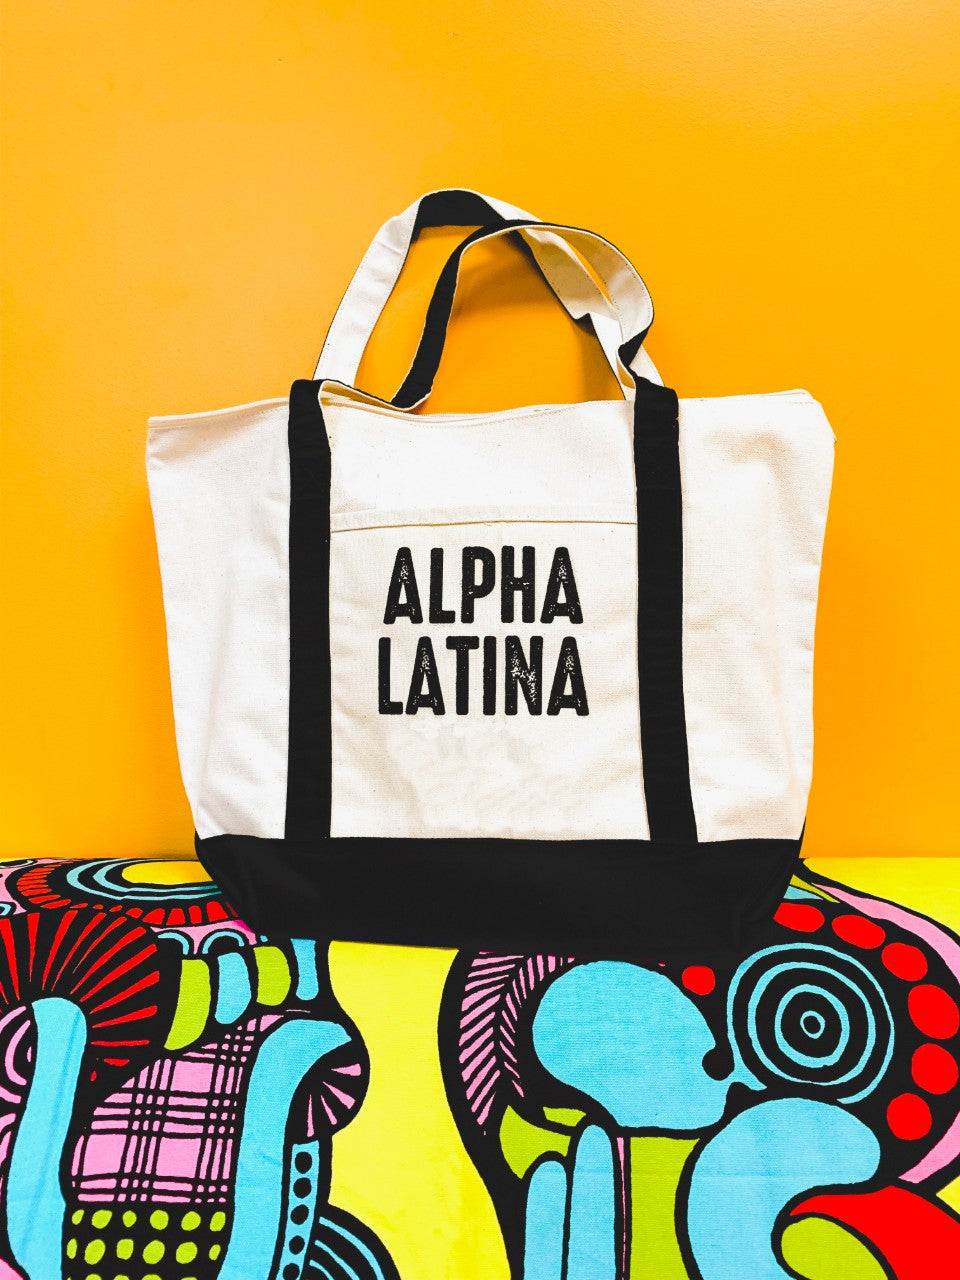 Alpha Latina women's empowerment Tote Bag by Luz Collective Shop